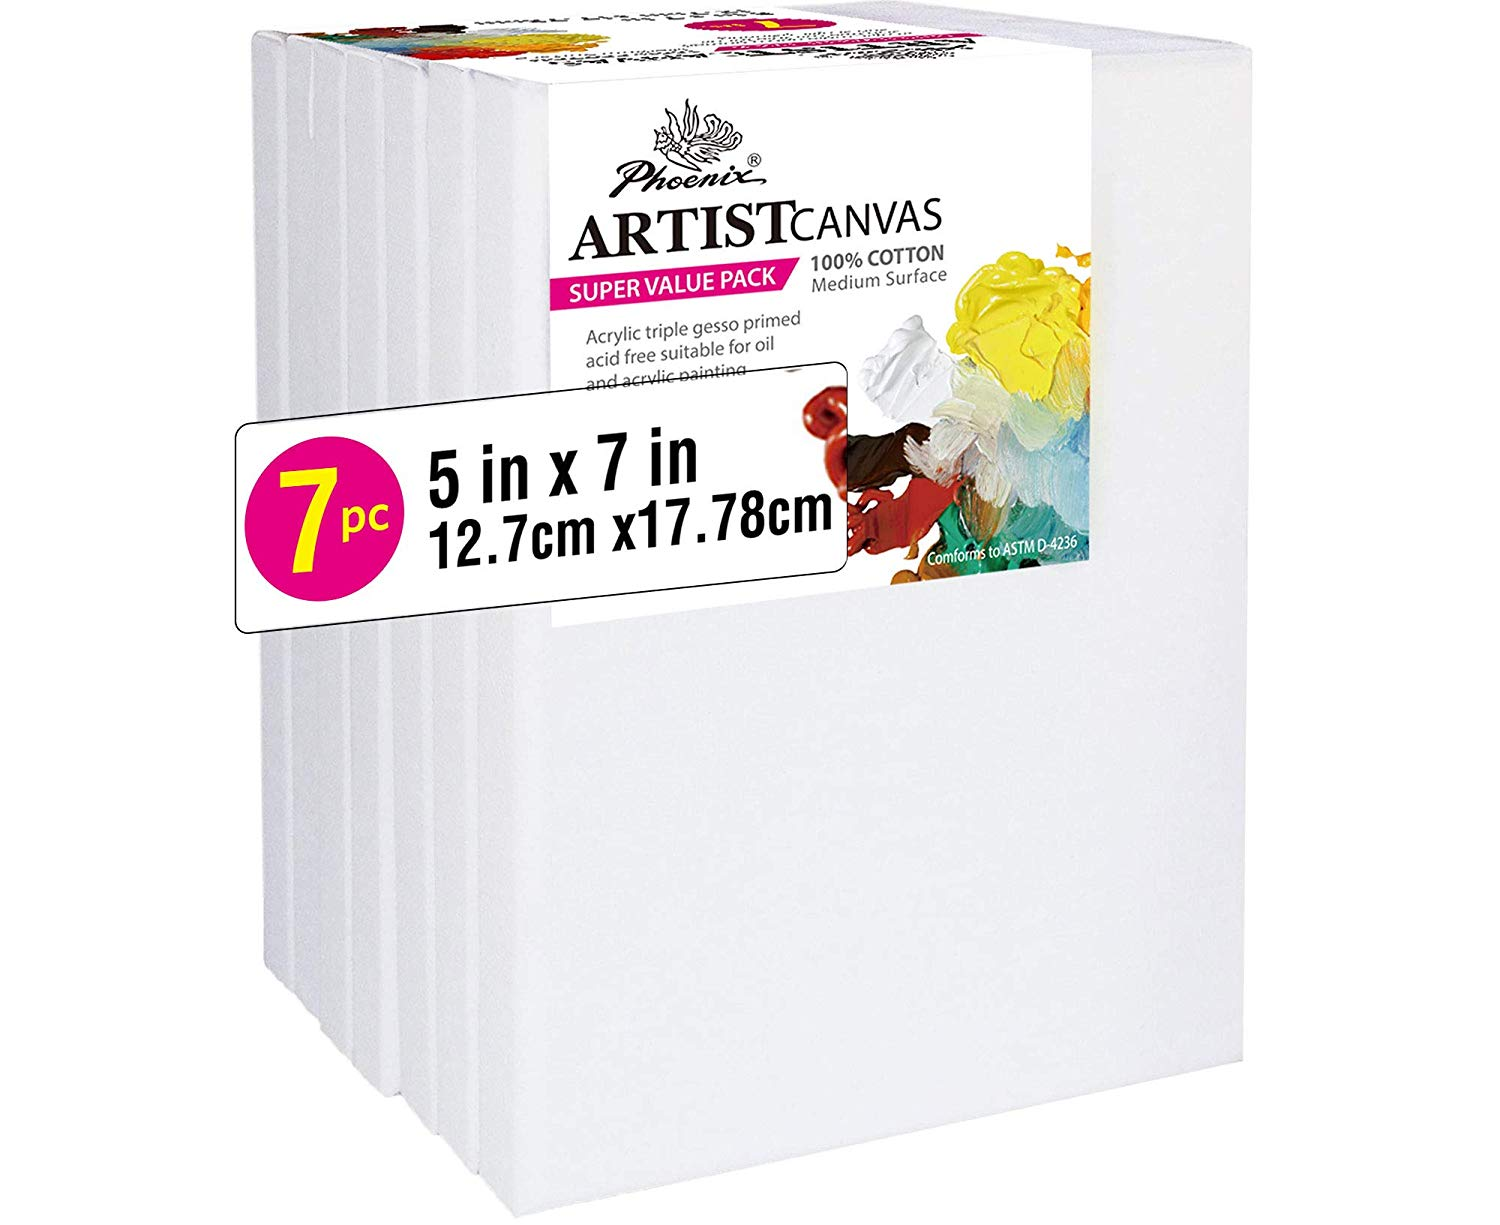 Oils /& Other Painting Media PHOENIX Pre Stretched Canvas for Painting 5//8 Inch Profile of Super Value Pack for Acrylics 8x10 Inch // 10 Pack